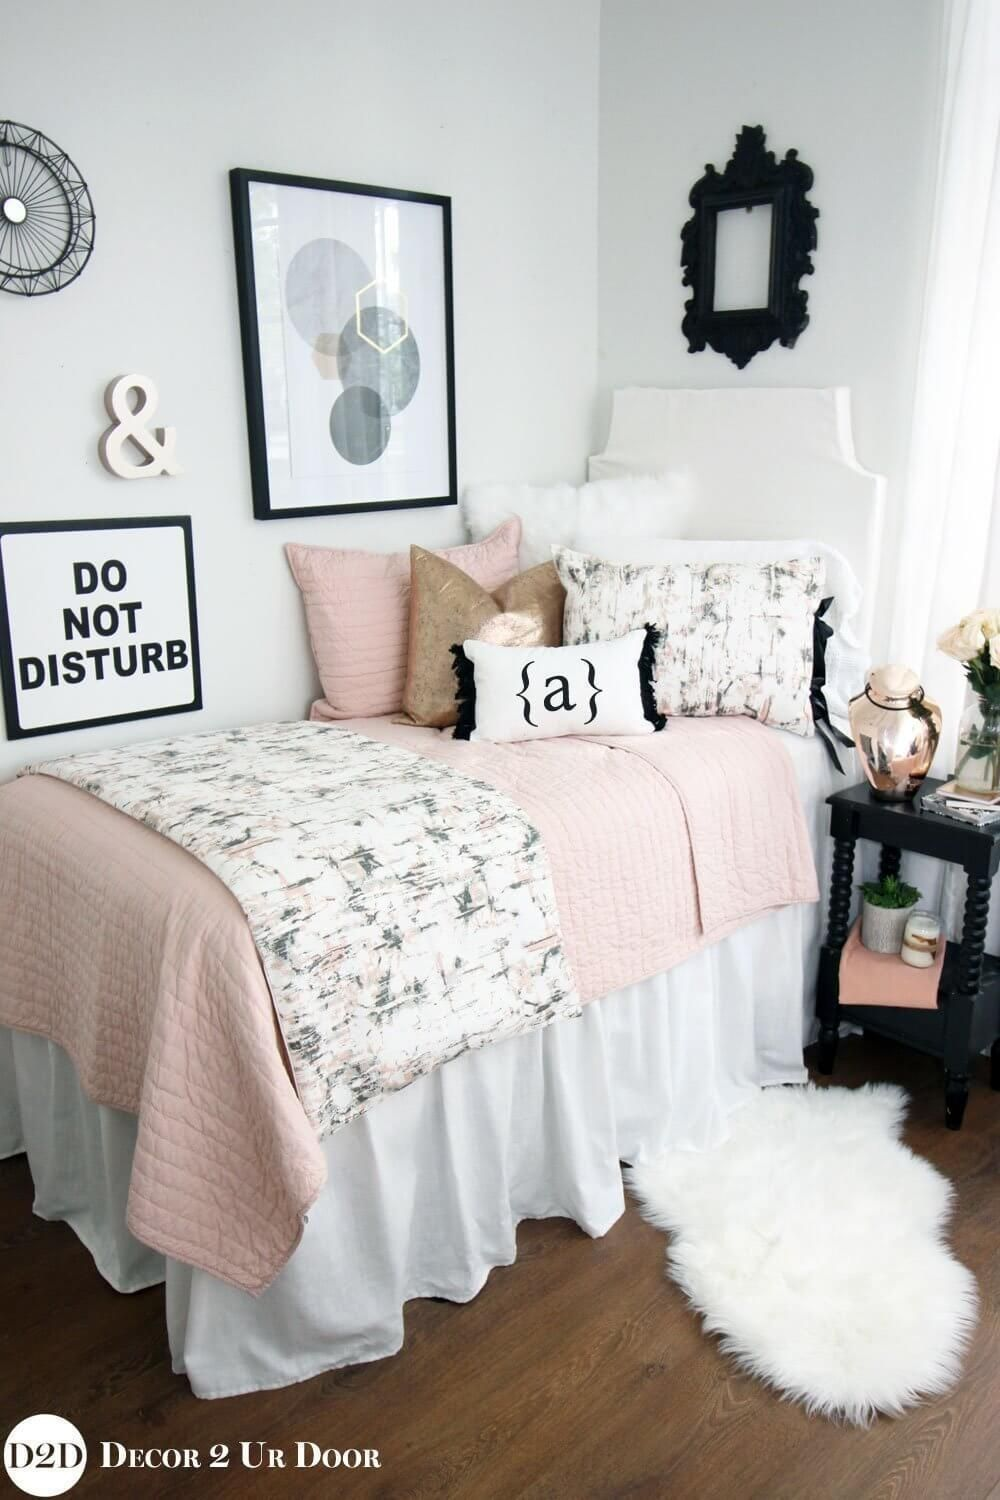 4 Genius Diy Dorm Room Decorating Ideas - Are you trying to